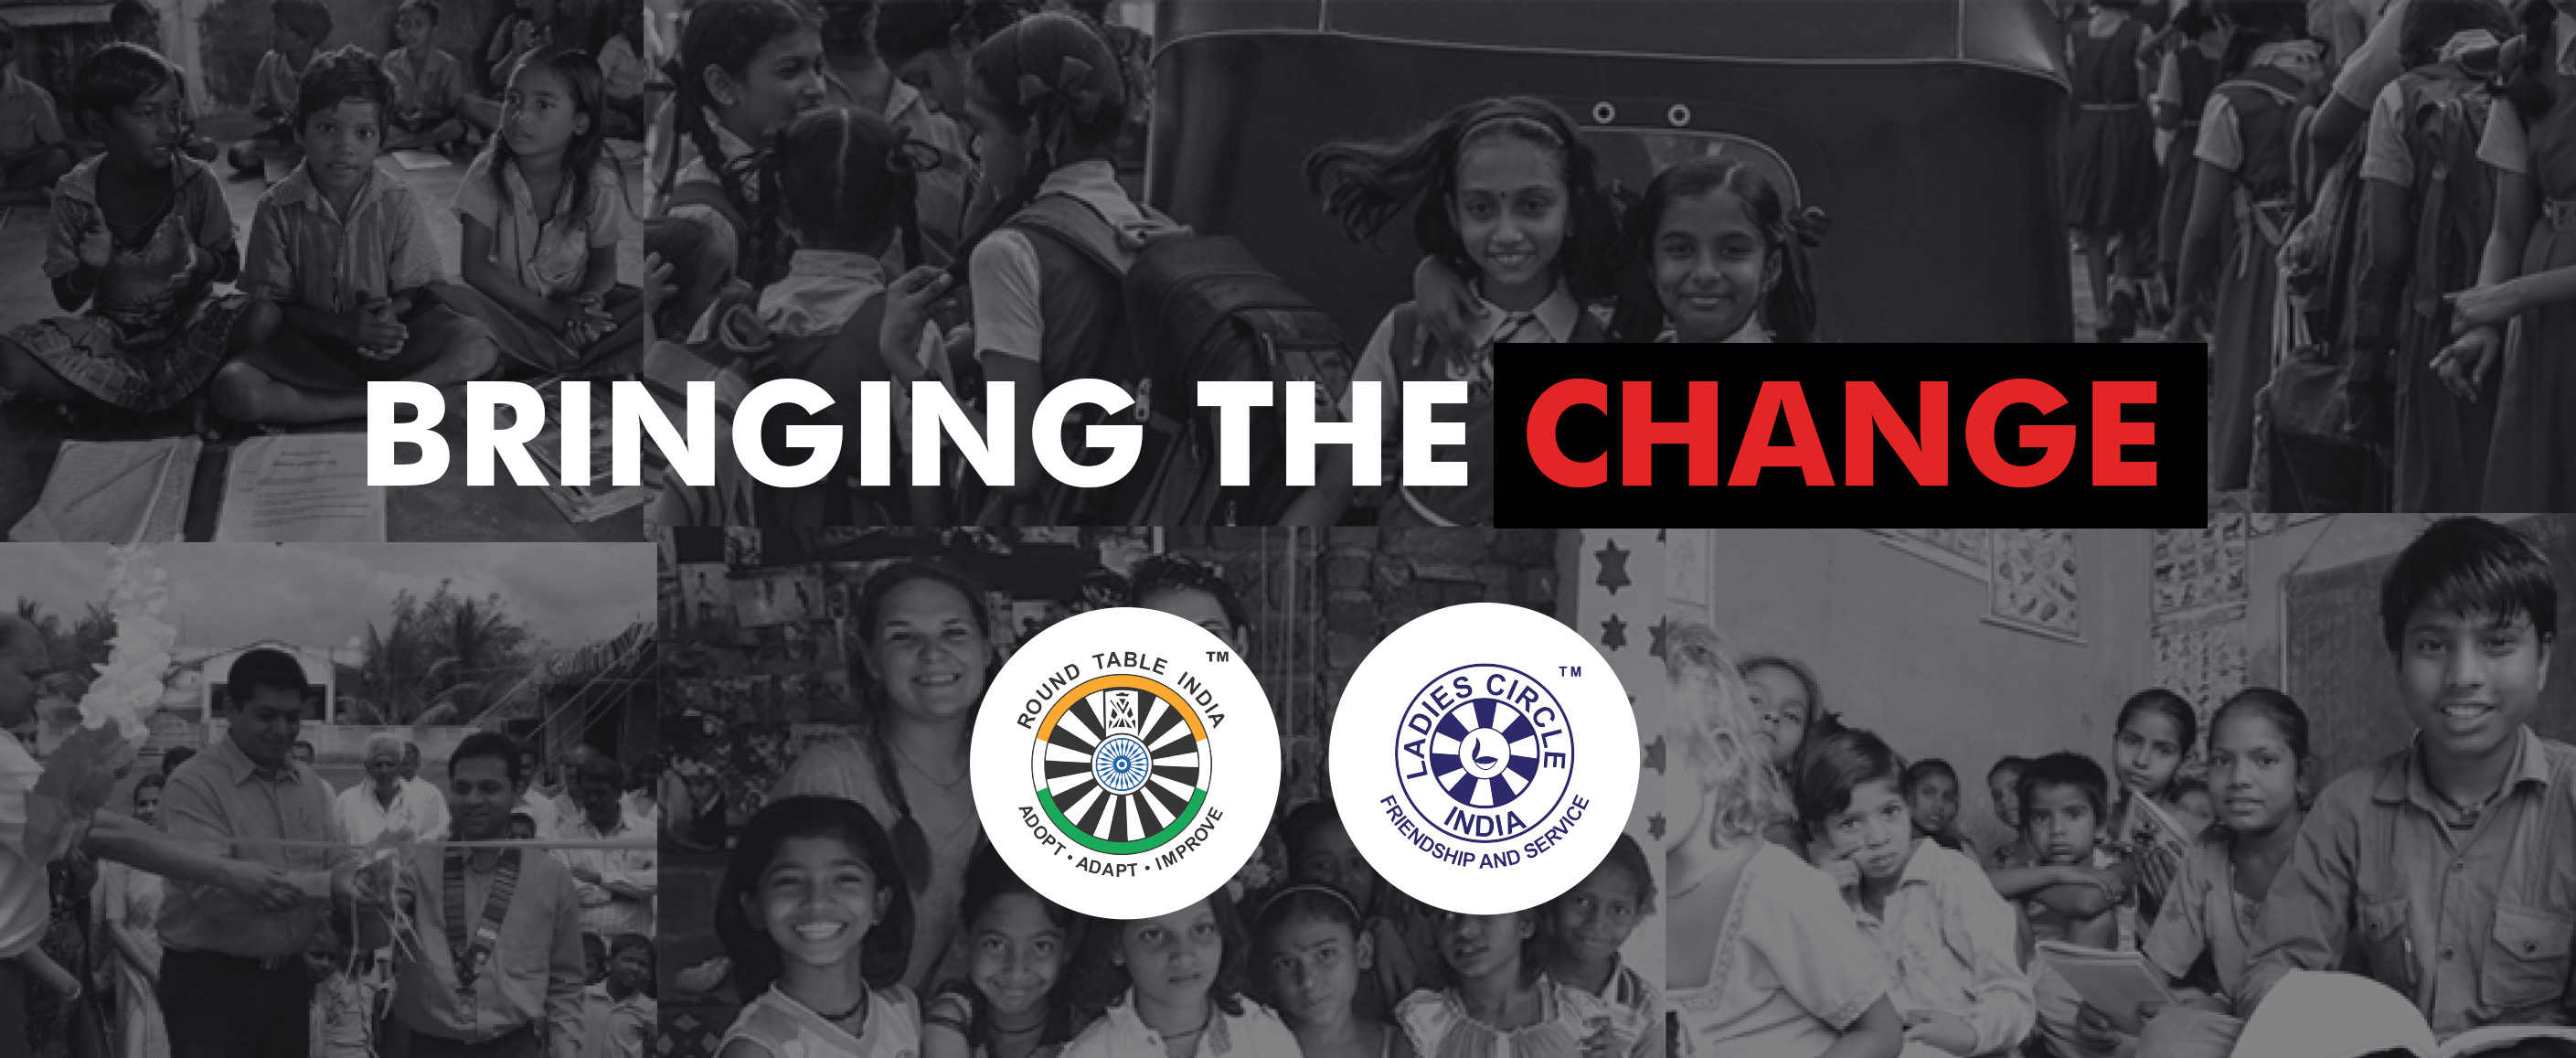 Run for Education: Bringing the Change